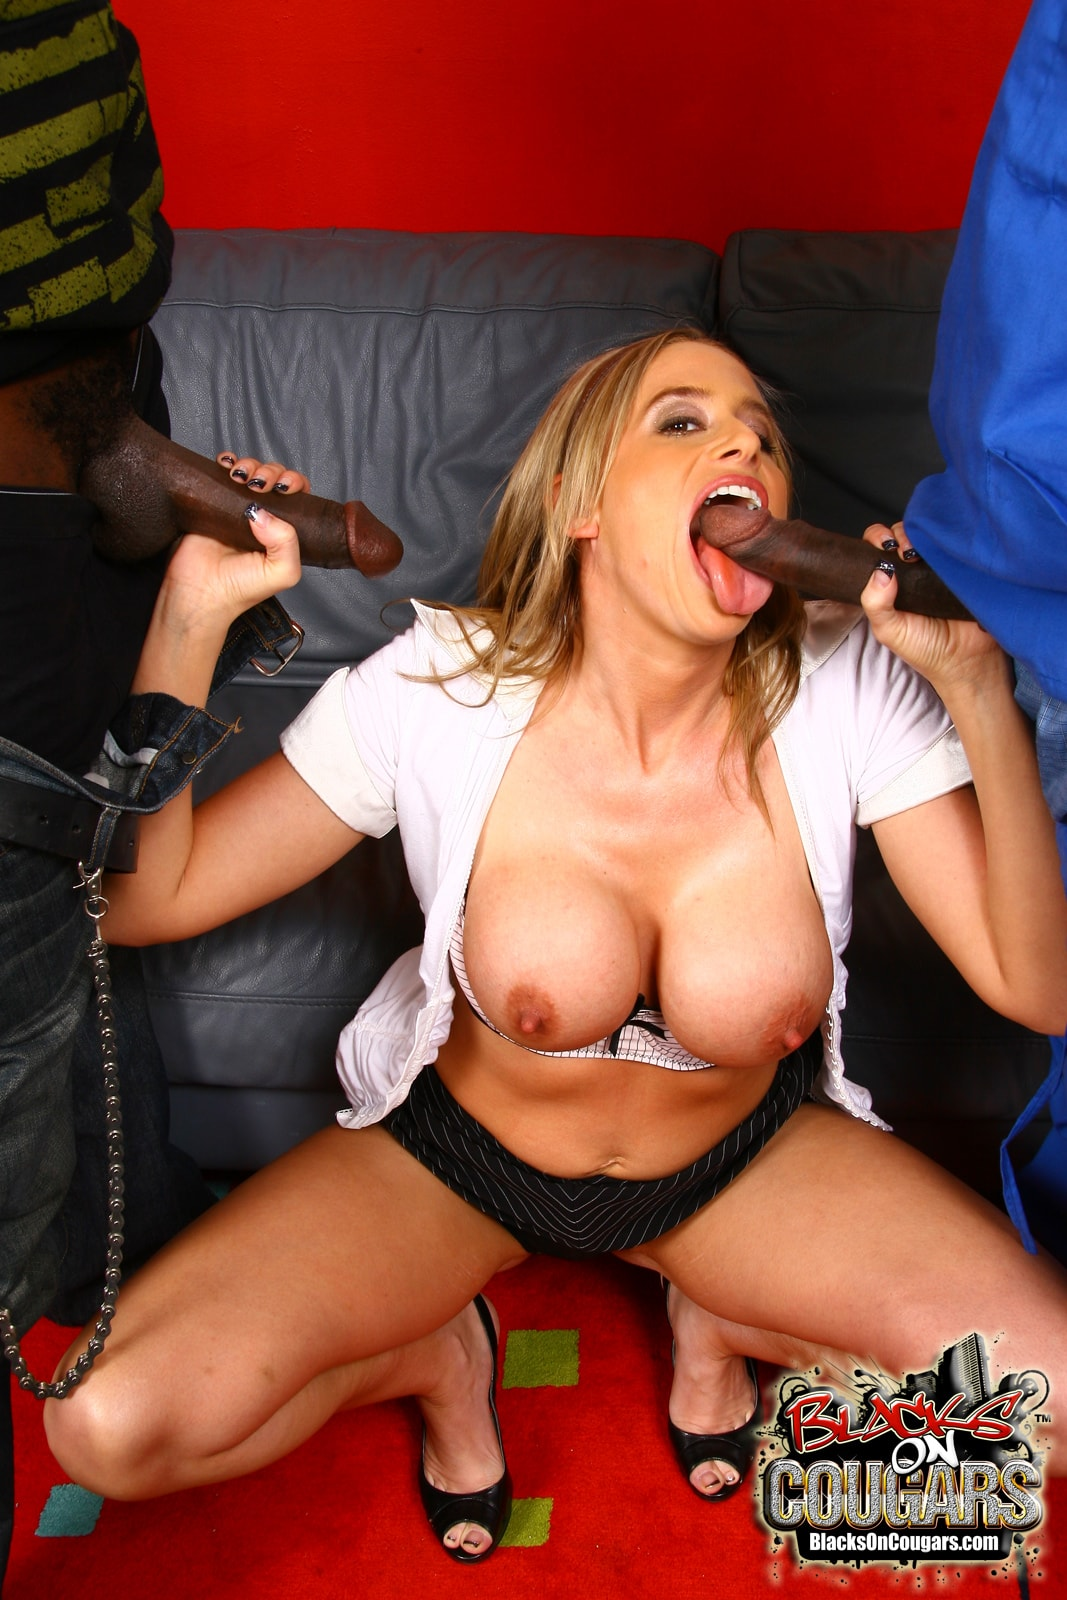 Dogfart '- Blacks On Cougars' starring Kylie Worthy (Photo 11)